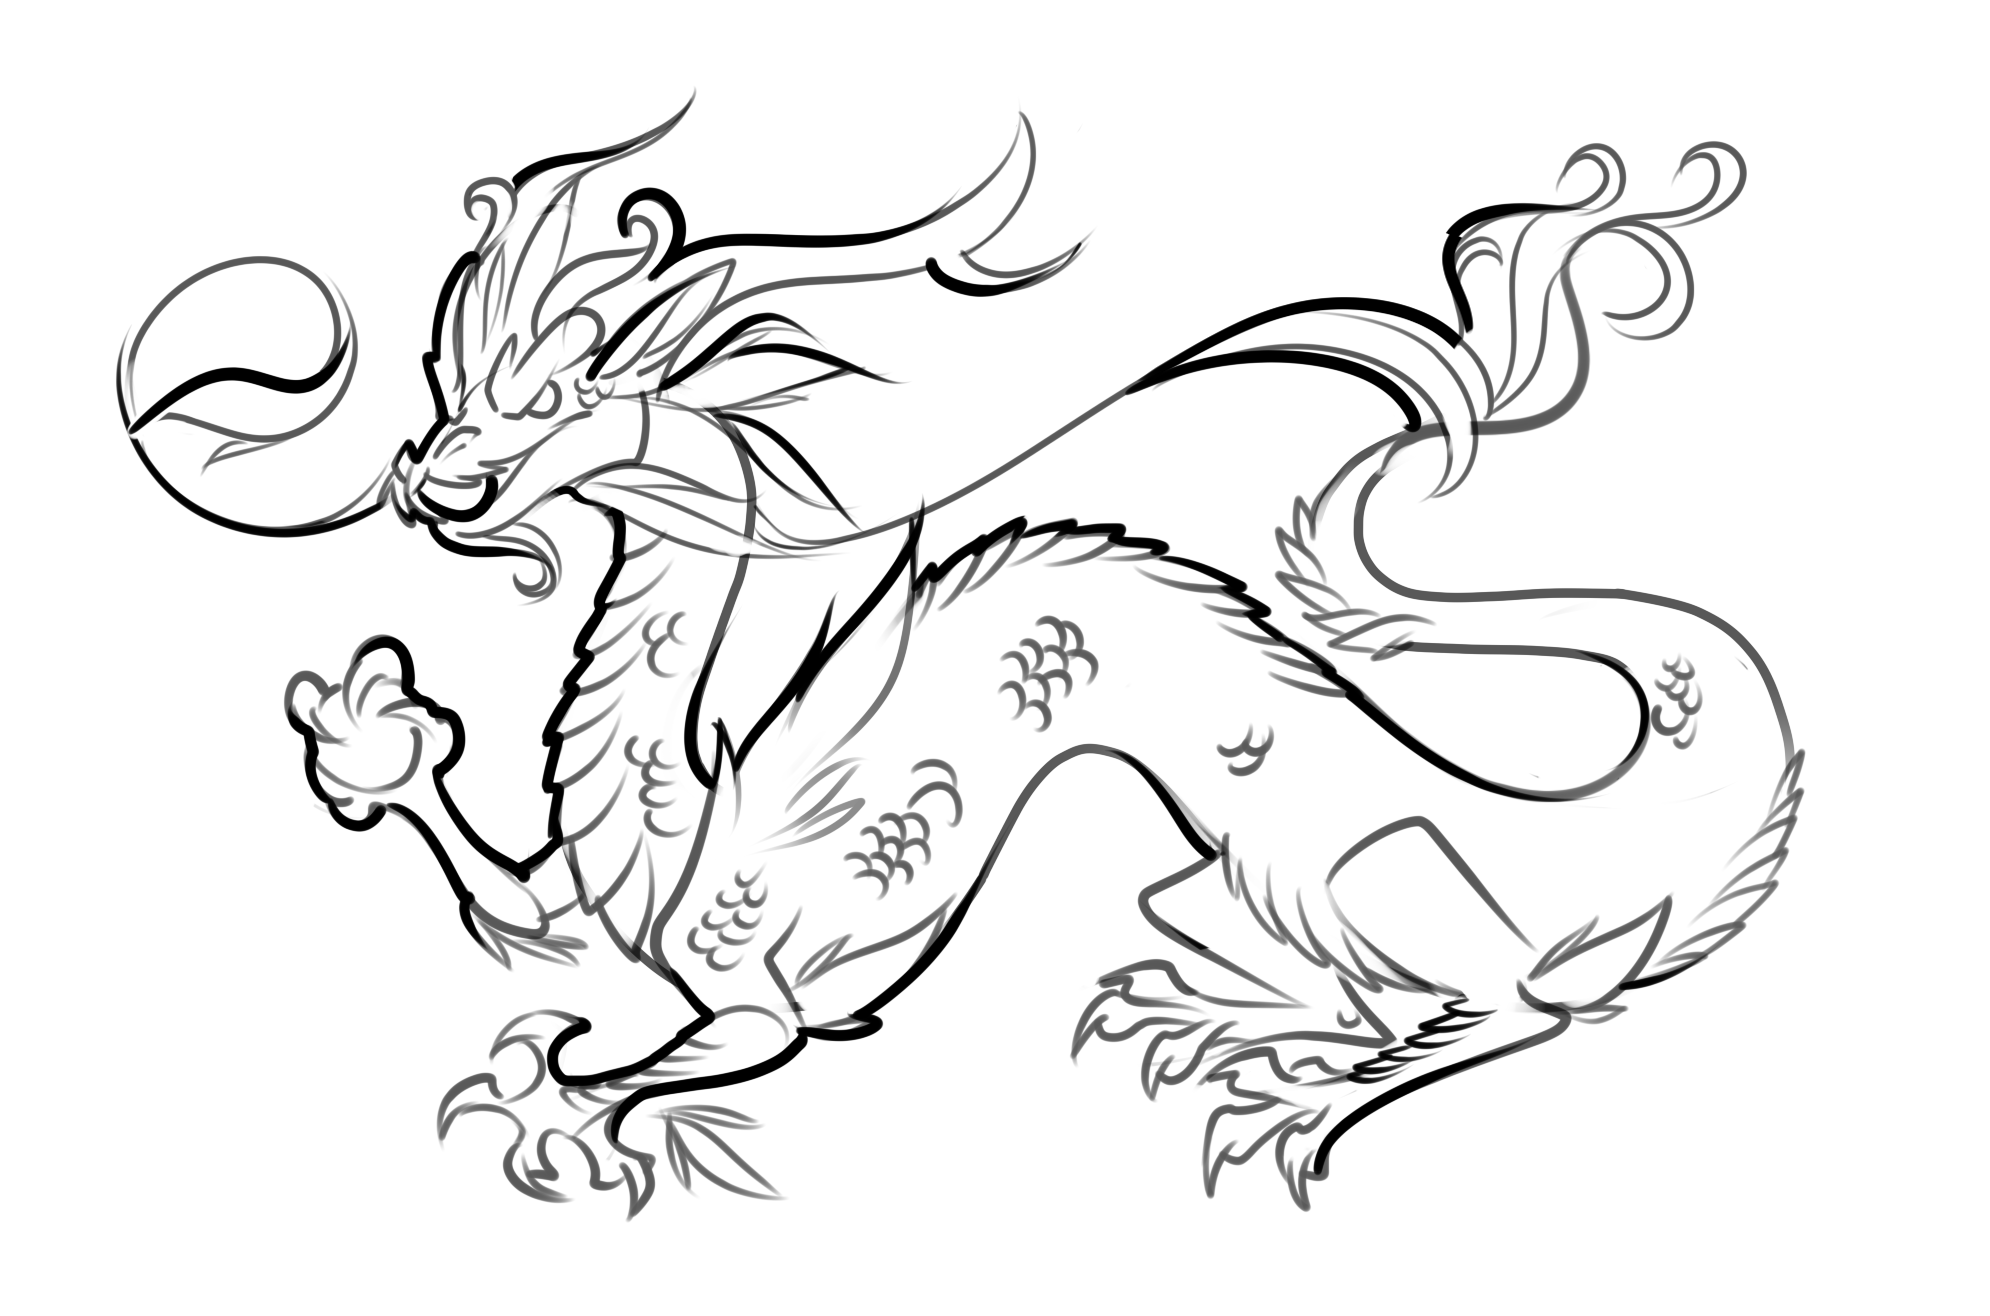 Free printable japanese coloring pages for adults - Free Printable Dragon Coloring Pages For Kids